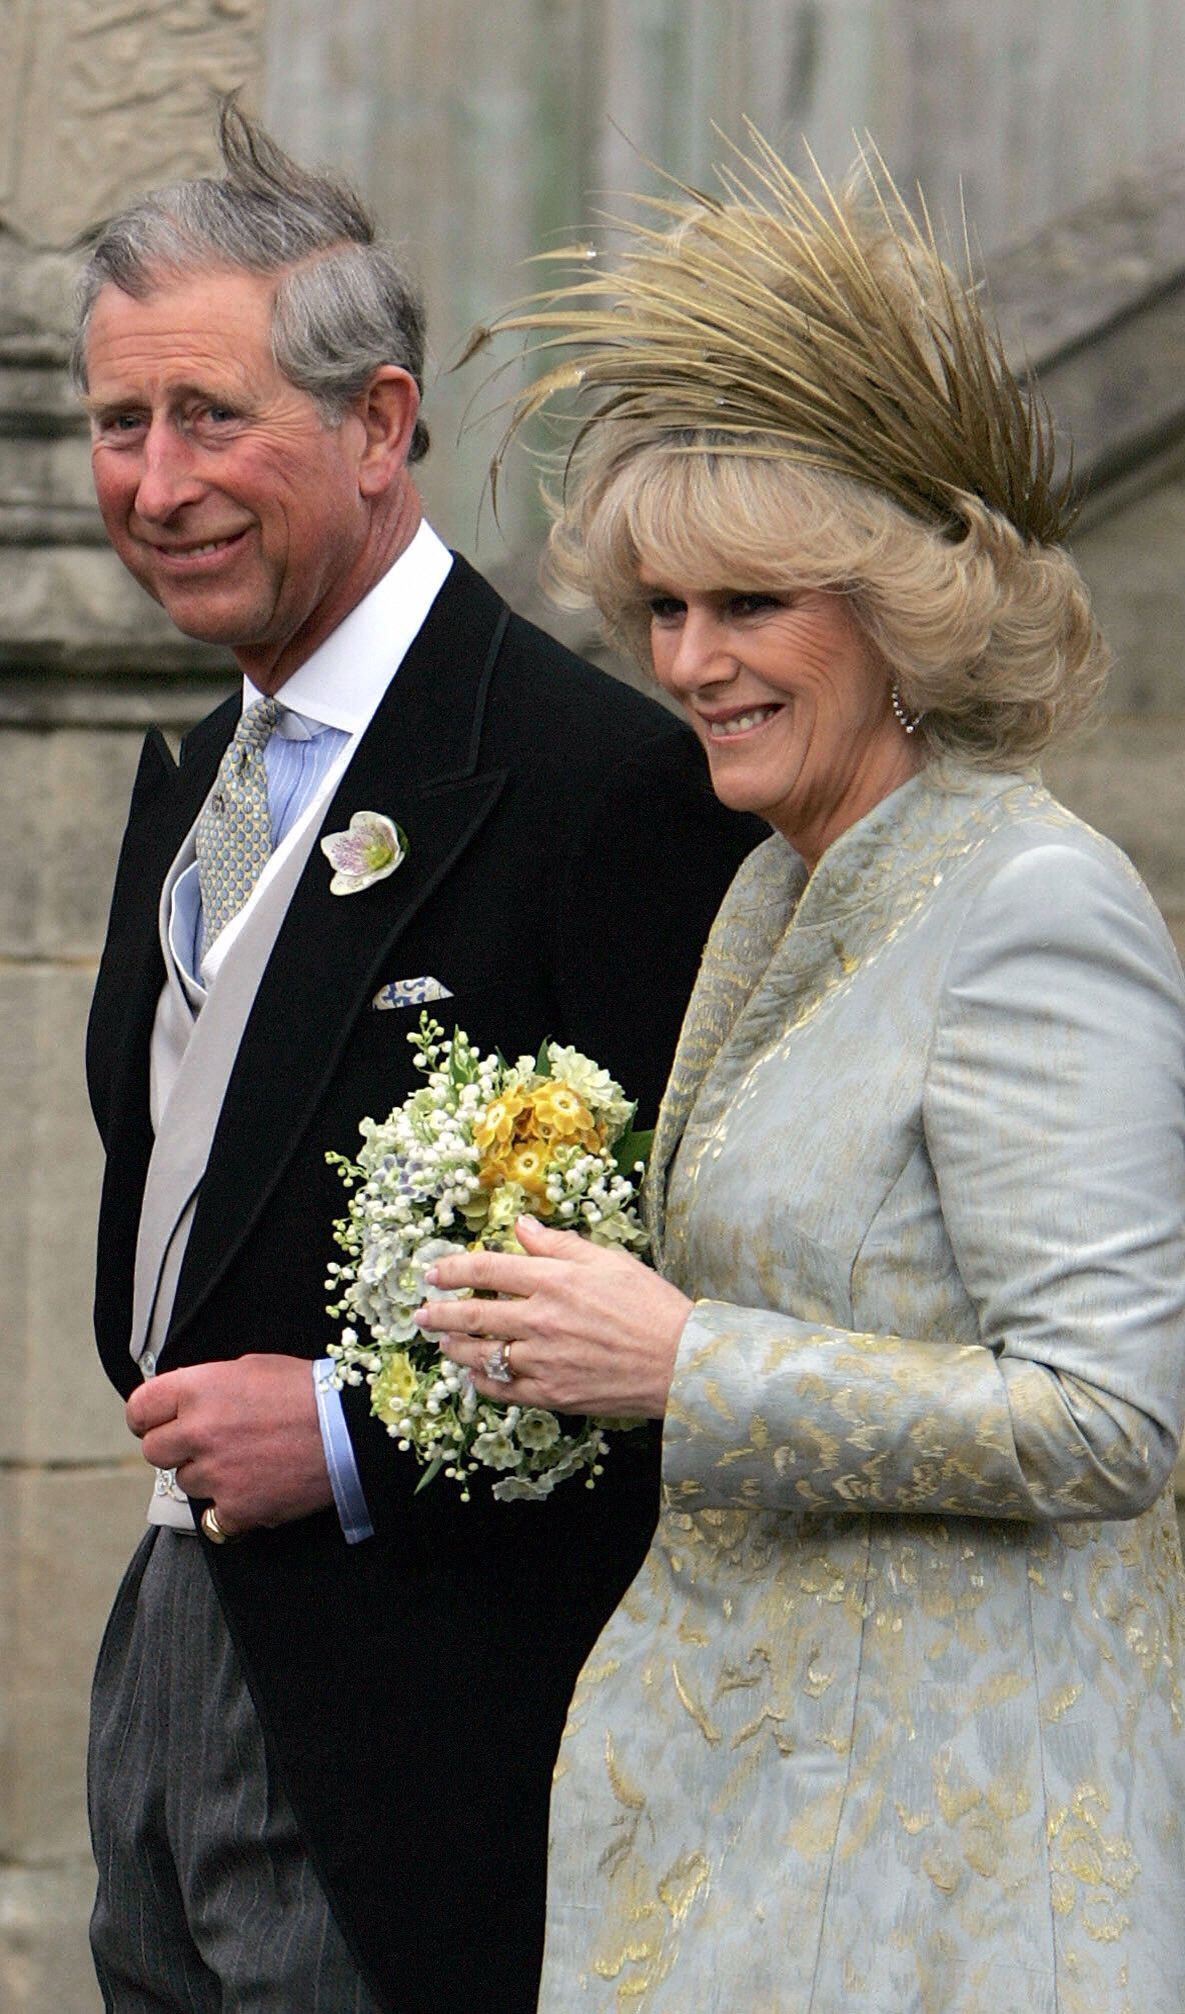 Lovely couple, Charles and Camilla on their wedding day